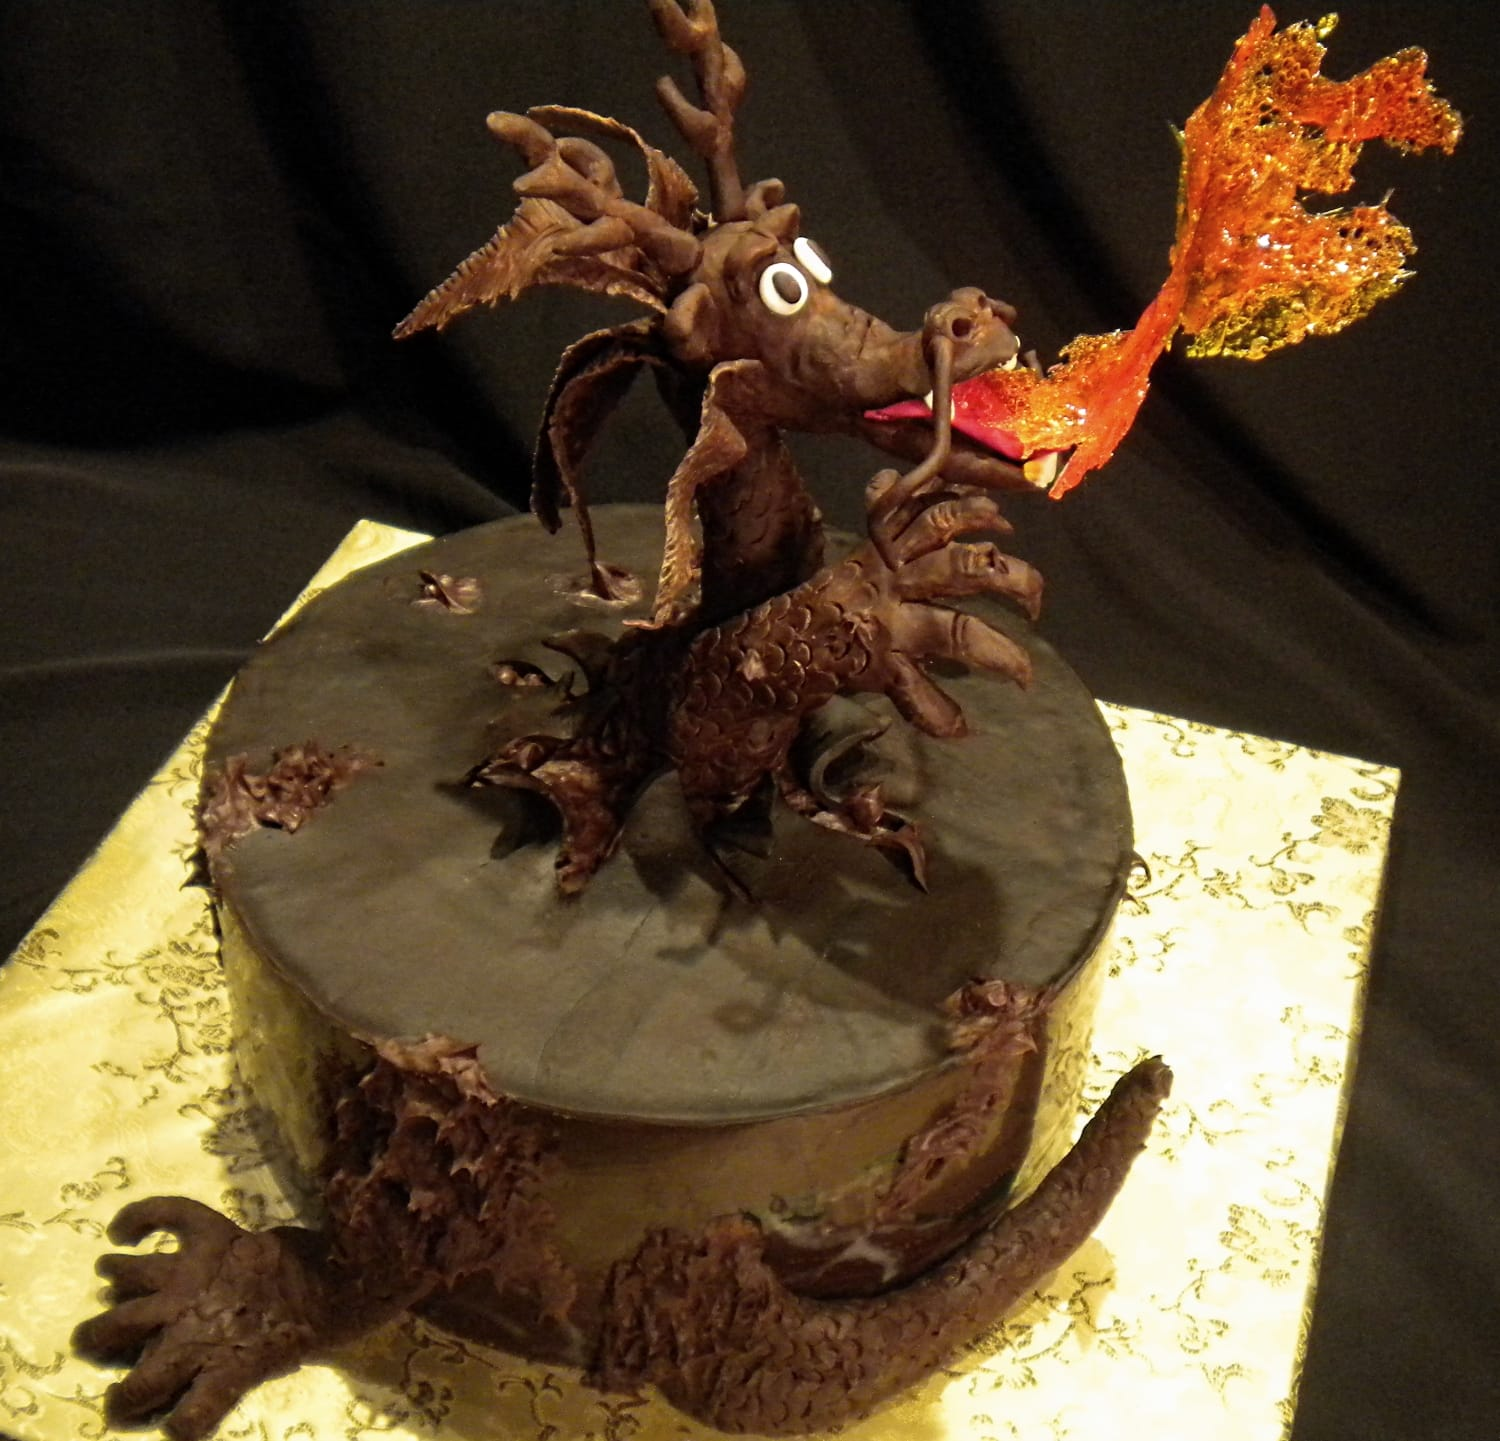 Dragon Cake for Taste of Chocolate 2012